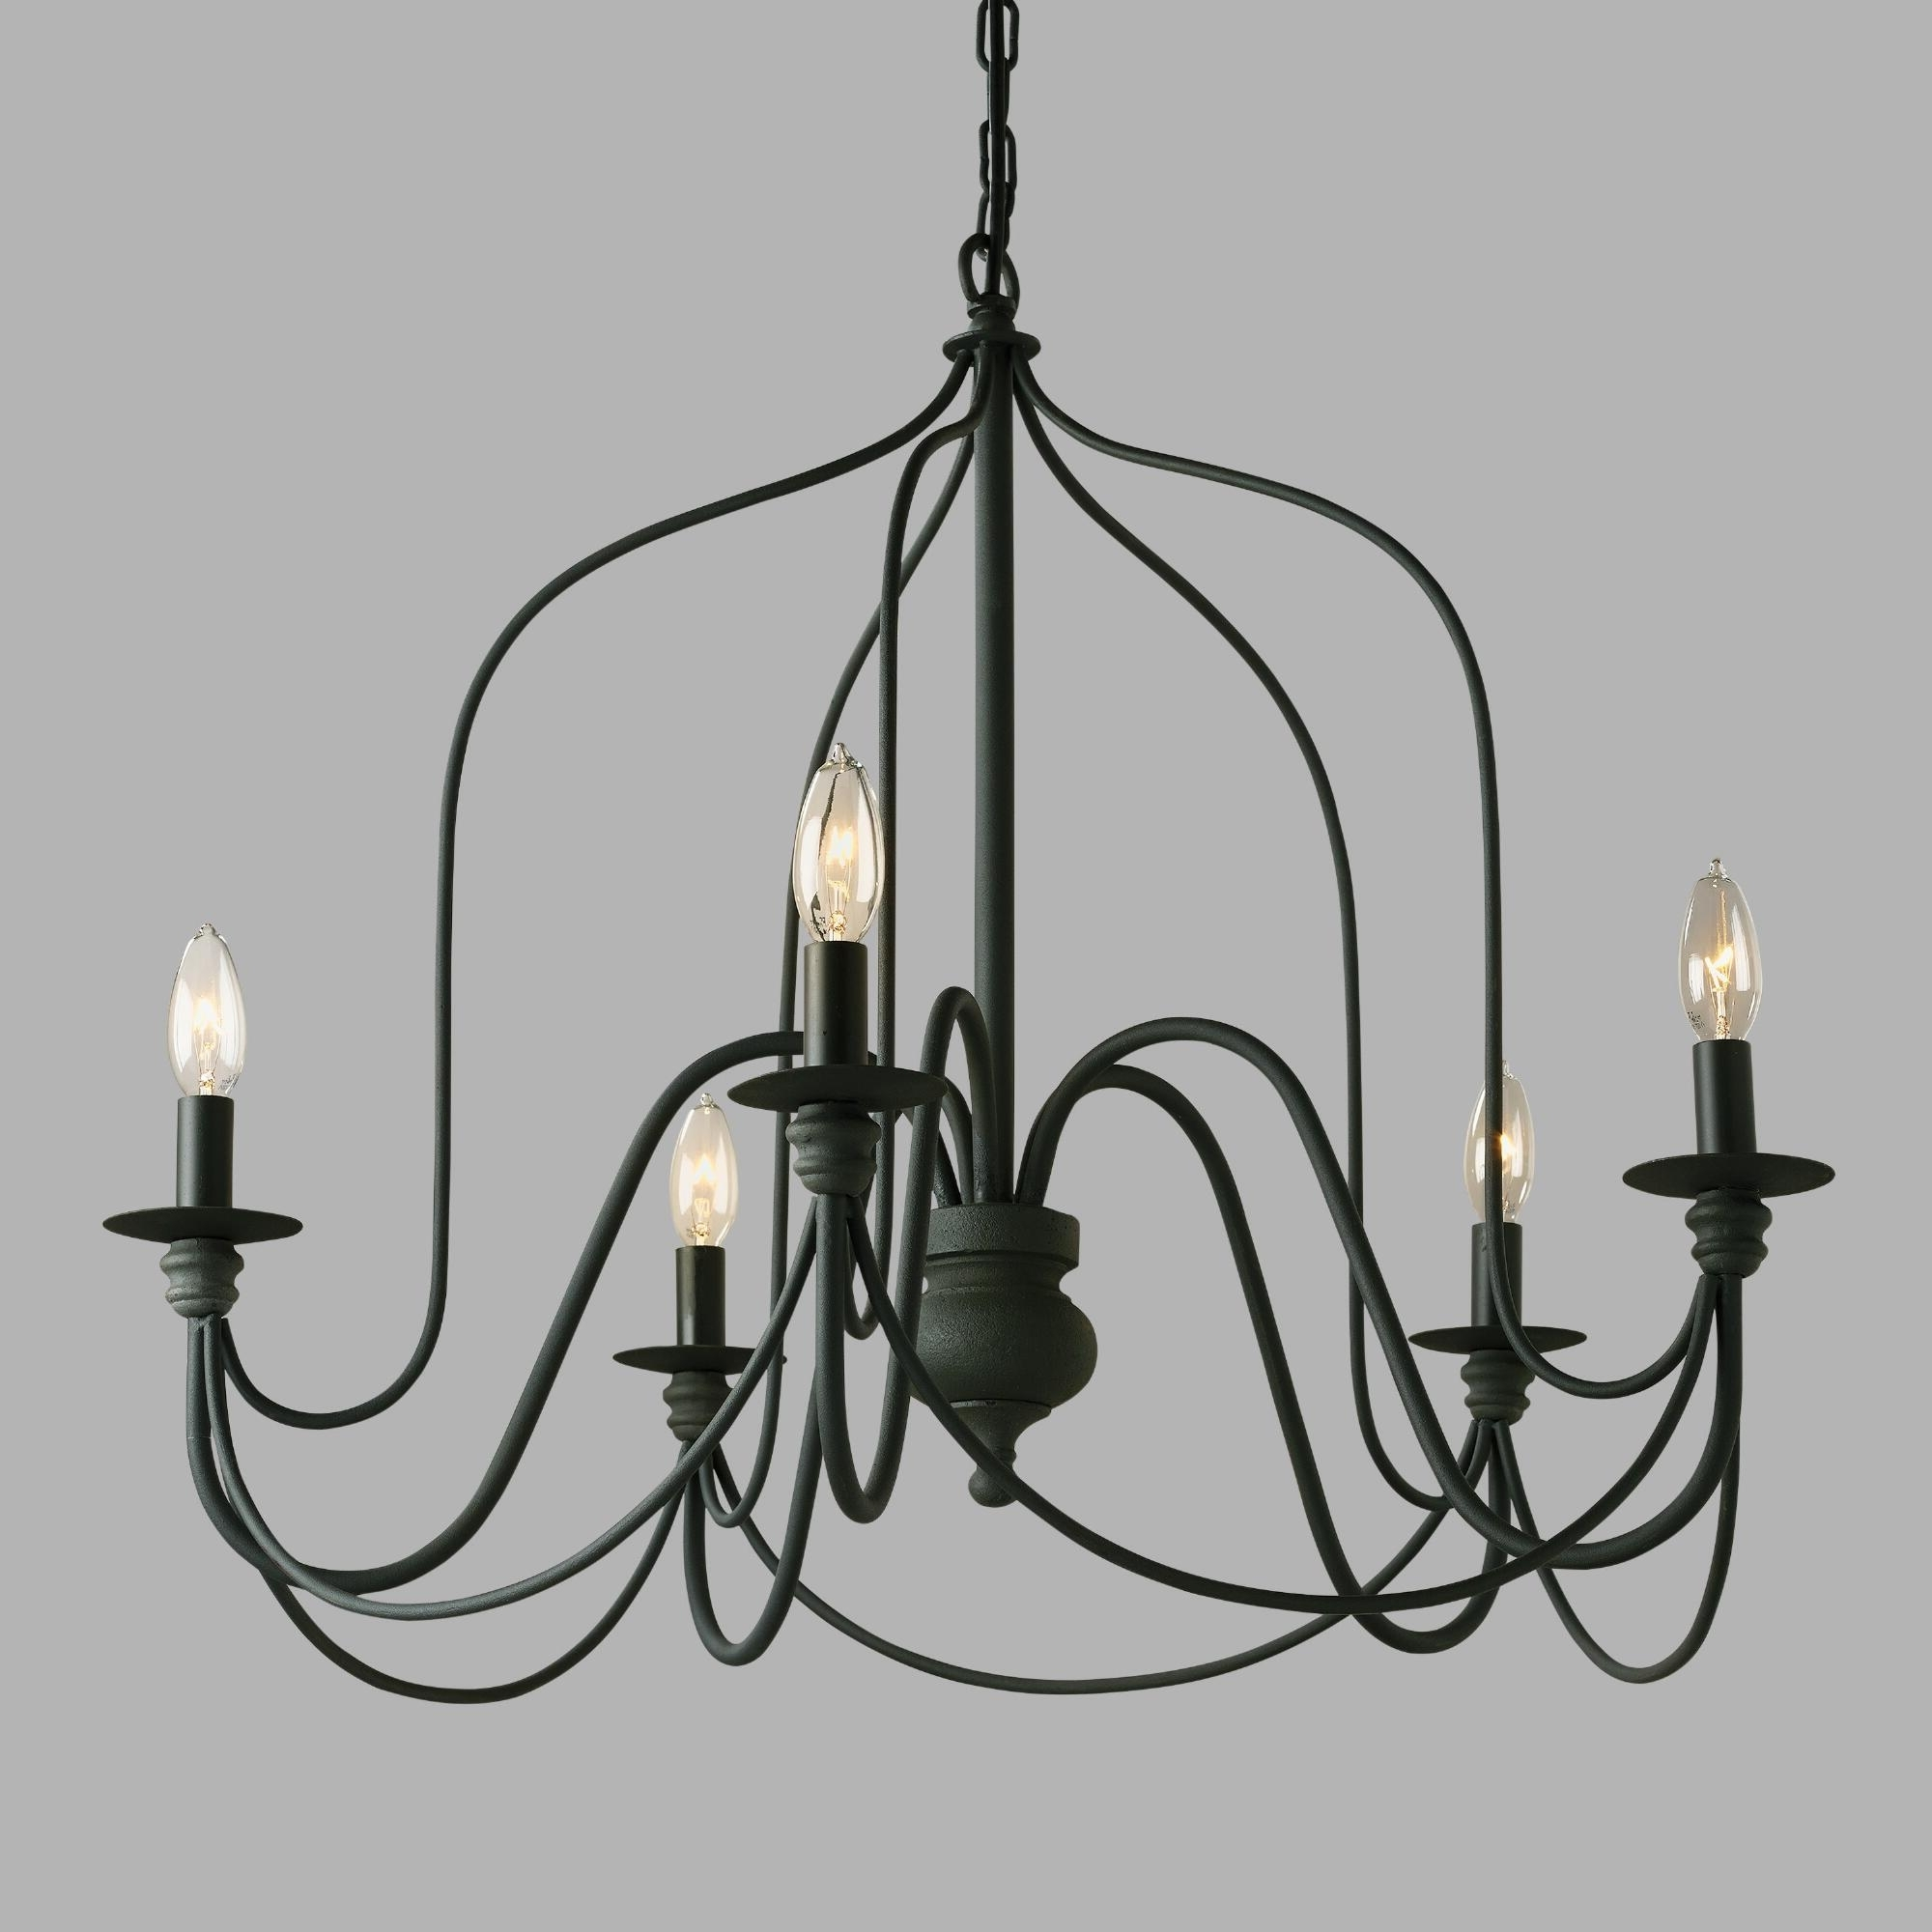 Chandeliers Design : Magnificent Decorative Chandelier Rustic Intended For Well Known Small Rustic Chandeliers (View 18 of 20)